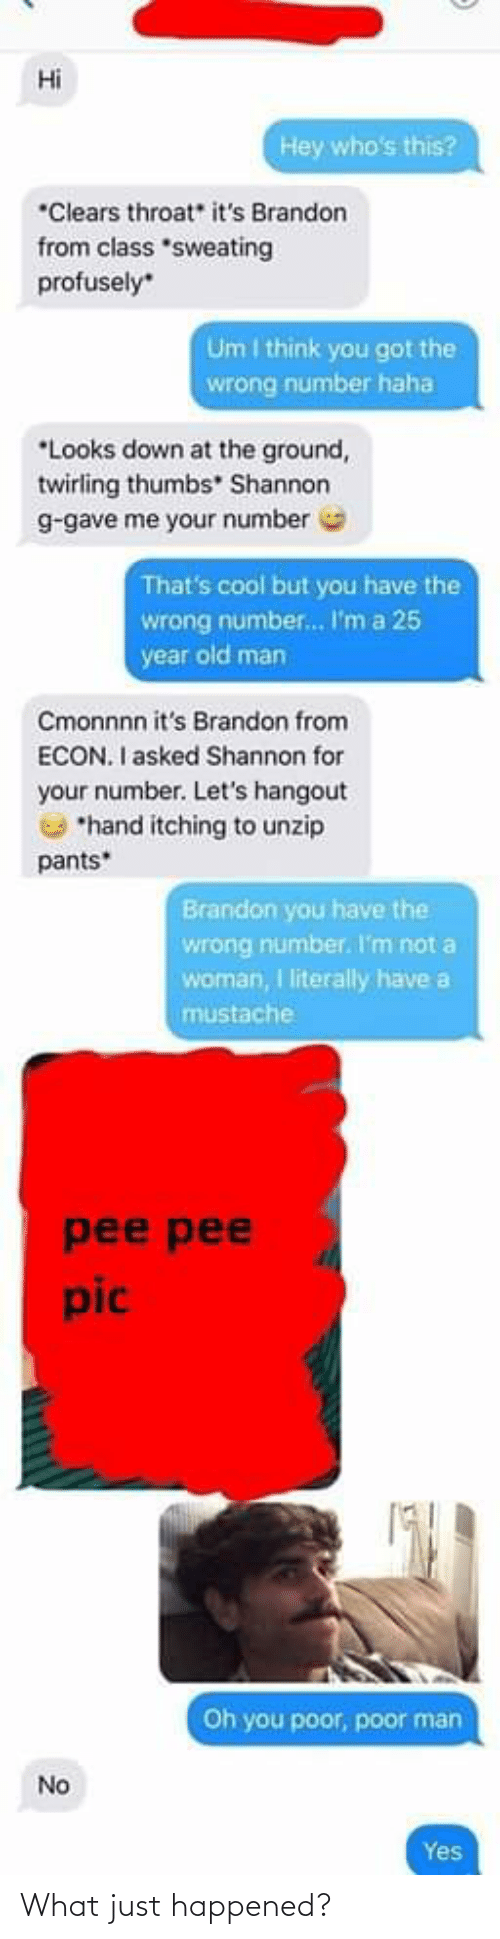 """Old Man, Cool, and Old: Hi  Hey who's this?  *Clears throat"""" it's Brandon  from class *sweating  profusely  Um I think you got the  wrong number haha  *Looks down at the ground,  twirling thumbs"""" Shannon  g-gave me your number  That's cool but you have the  wrong number. I'm a 25  year old man  Cmonnnn it's Brandon from  ECON. I asked Shannon for  your number. Let's hangout  *hand itching to unzip  pants*  Brandon you have the  wrong number. I'm not a  woman, I literally have a  mustache  pee pee  pic  Oh you poor, poor man  No  Yes What just happened?"""